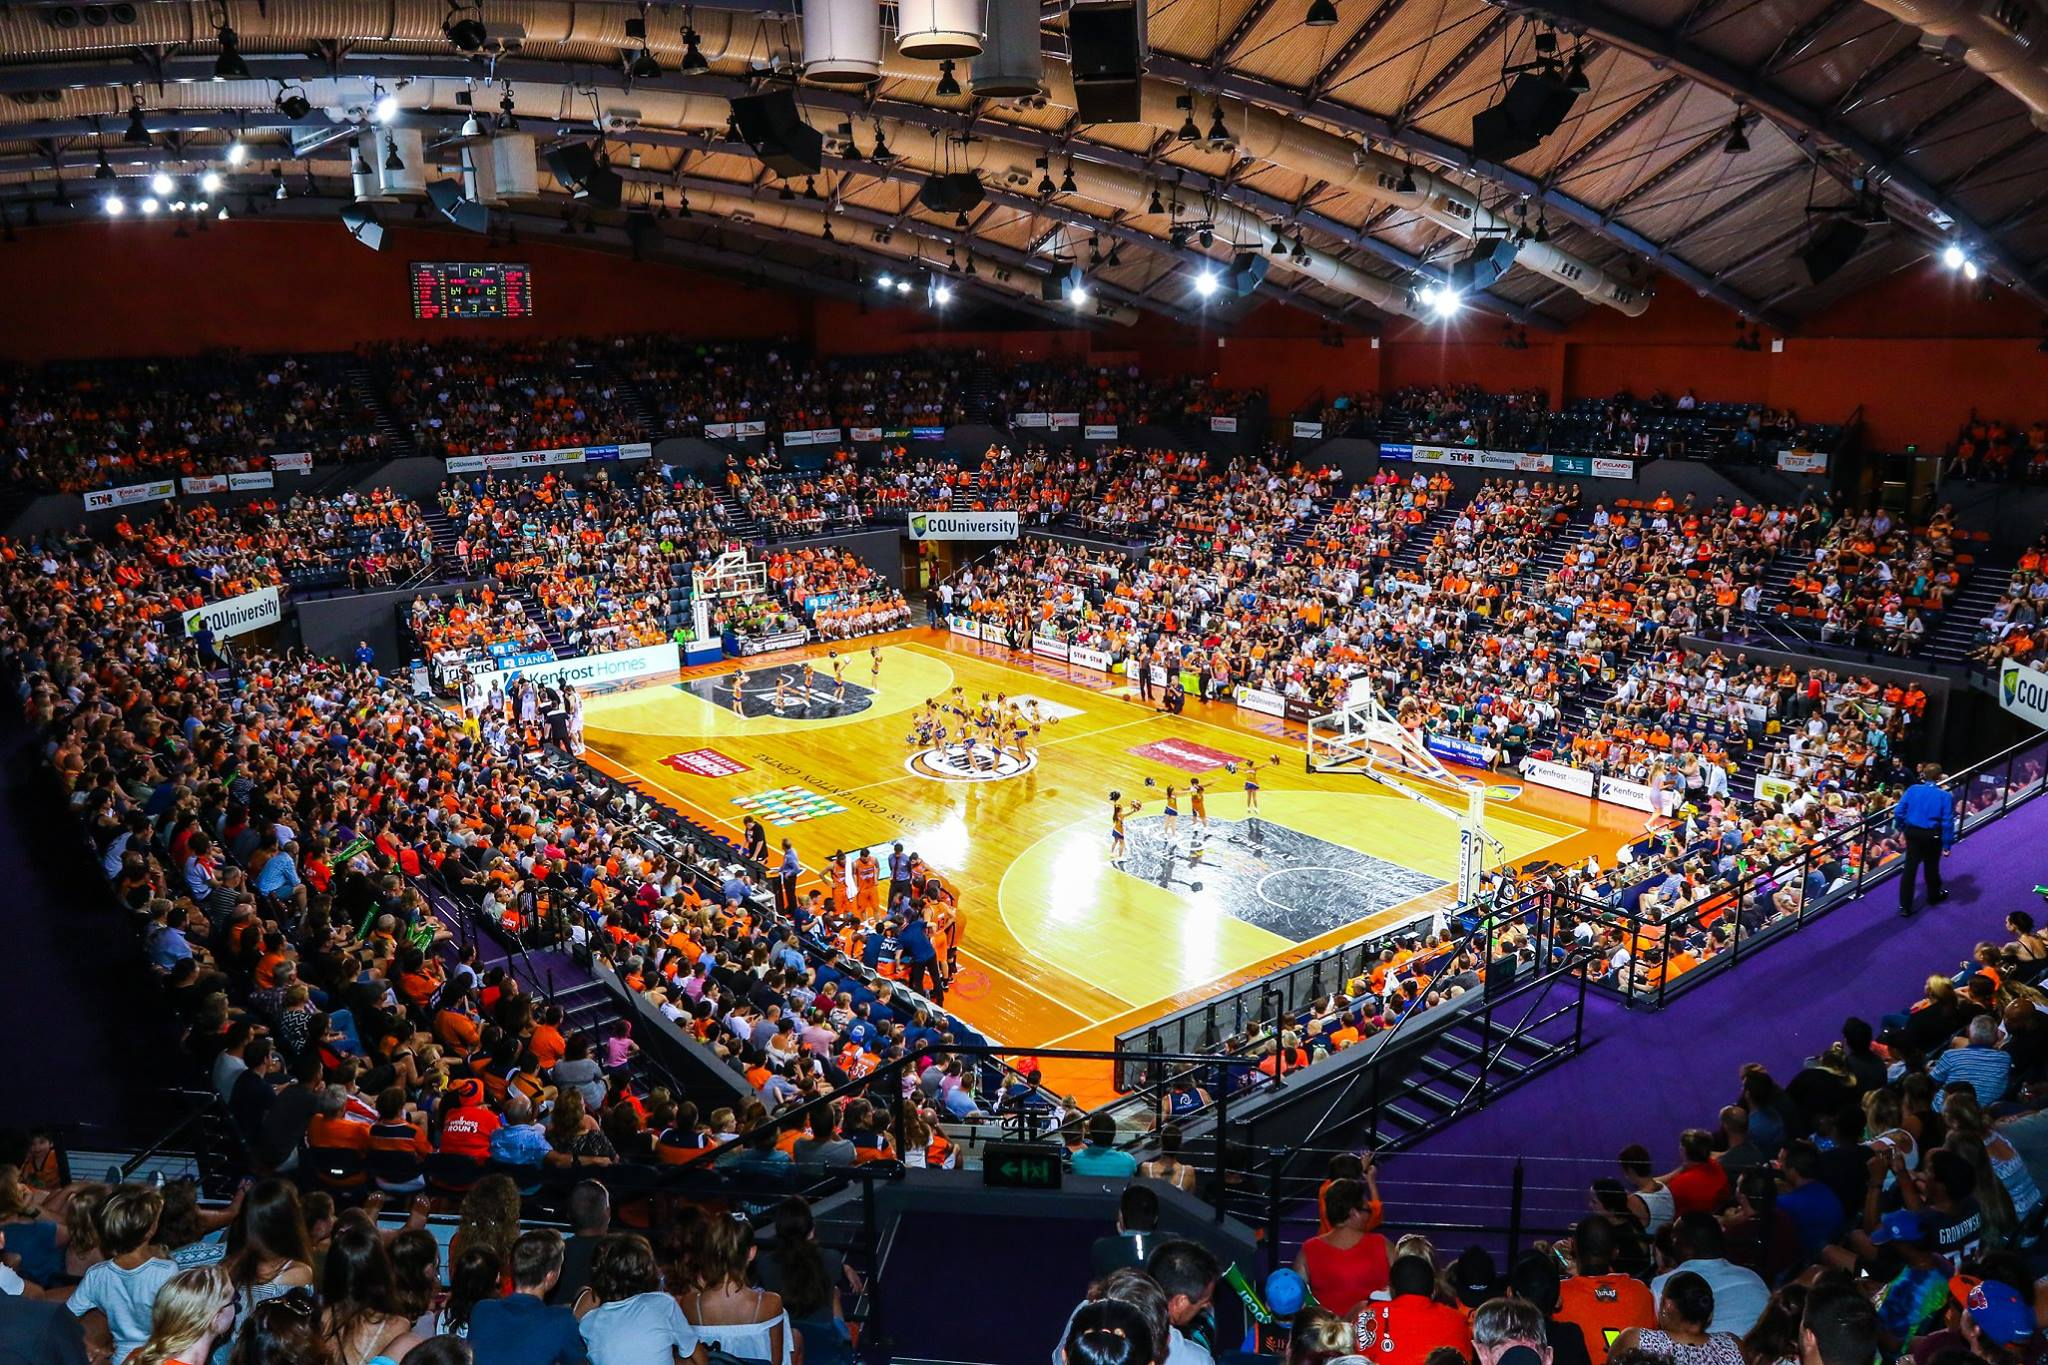 Taipans basketball game